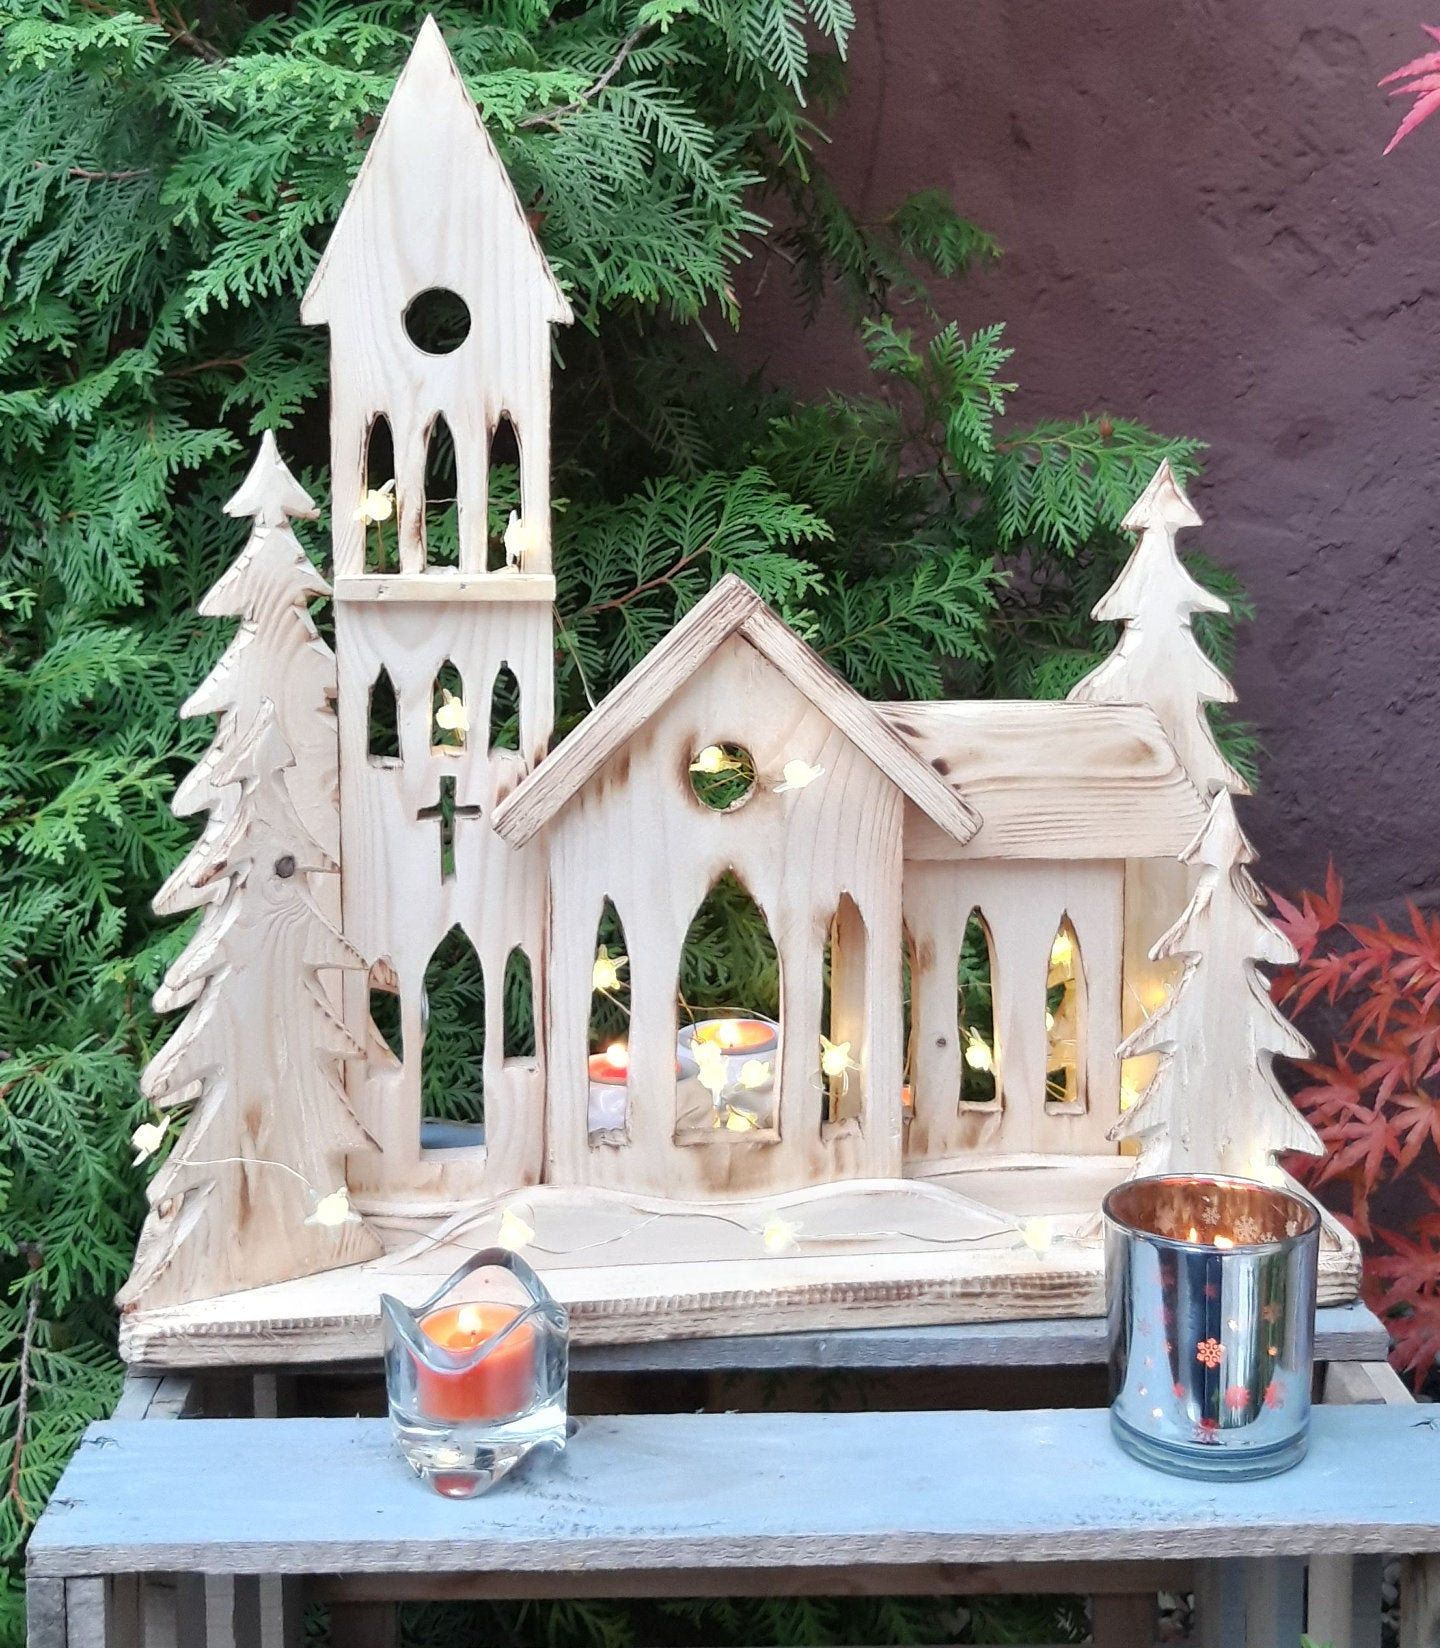 Stand, DEKOIDEE for indoors or outdoors- garden, entrance to the house, terrace,balcony,gift of pallets HOLZ Nature NEW